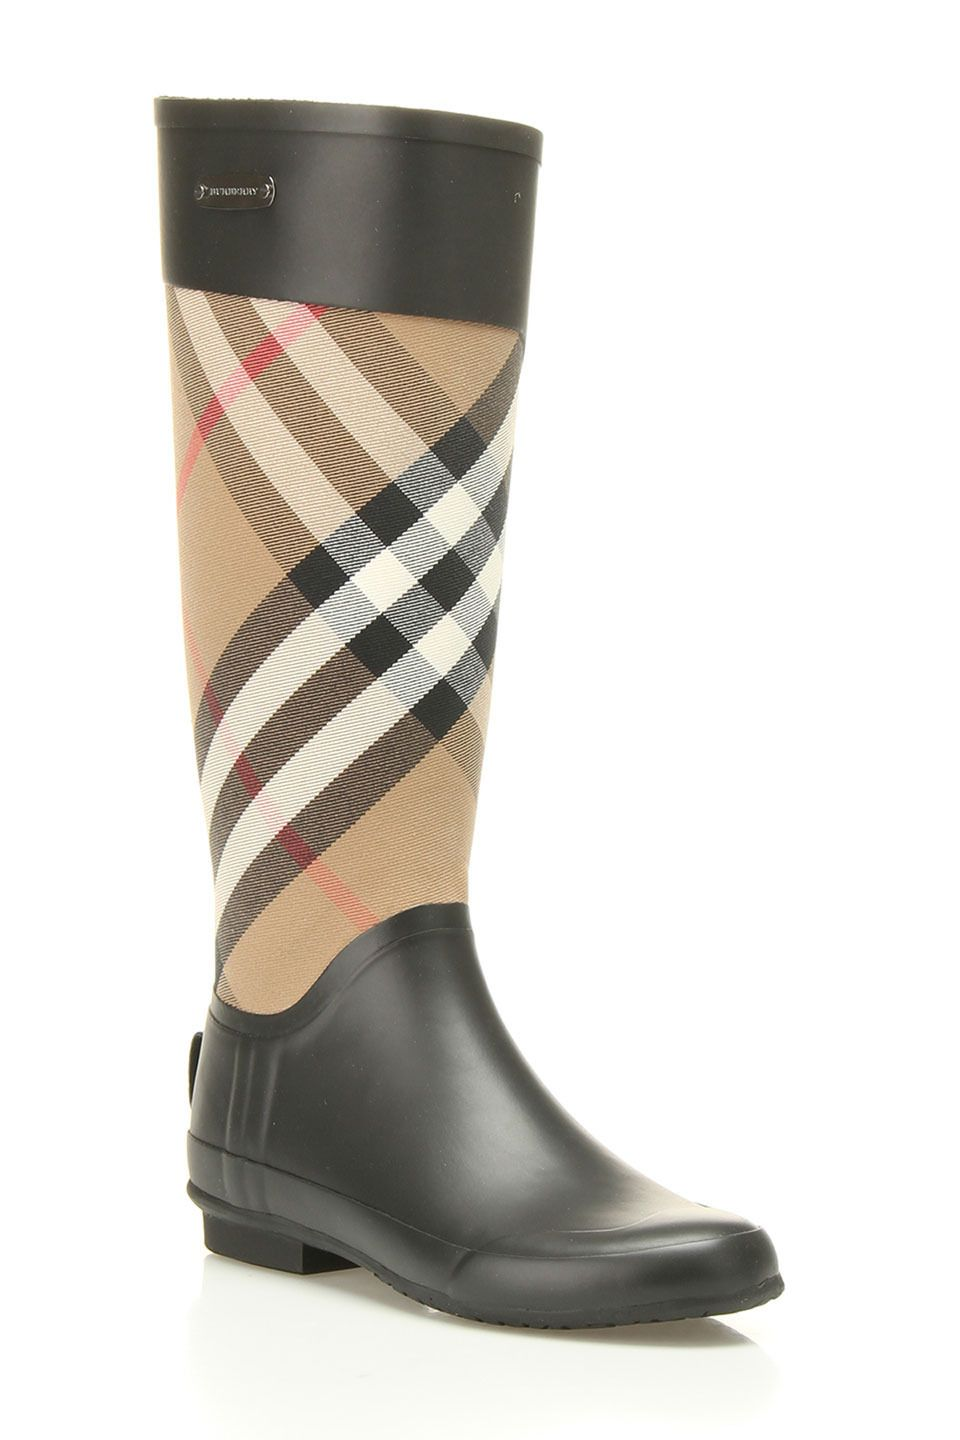 Burberry Clemance Rain Boots In House Check & Caramel - Beyond the Rack